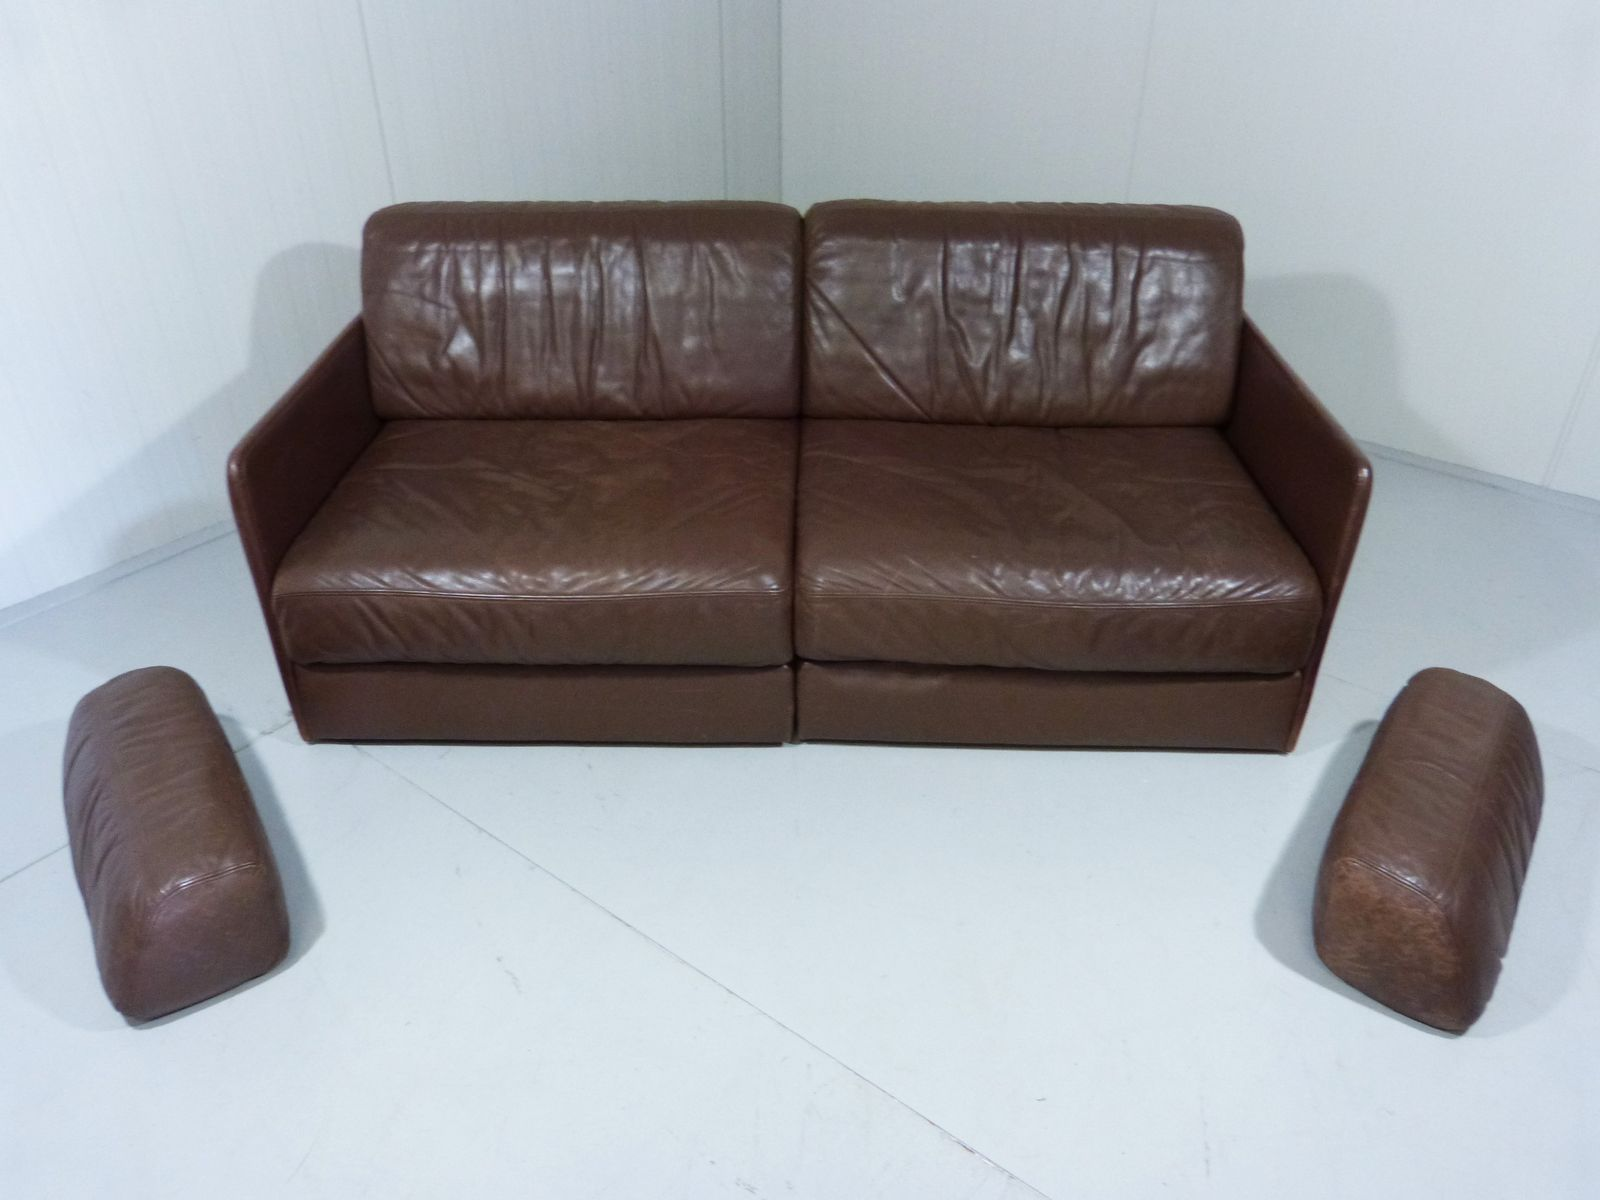 76 Sofa Bed Hereo Sofa : ds 76 brown leather sofa bed from de sede 1970s 5 from hereonout.net size 1600 x 1200 jpeg 93kB